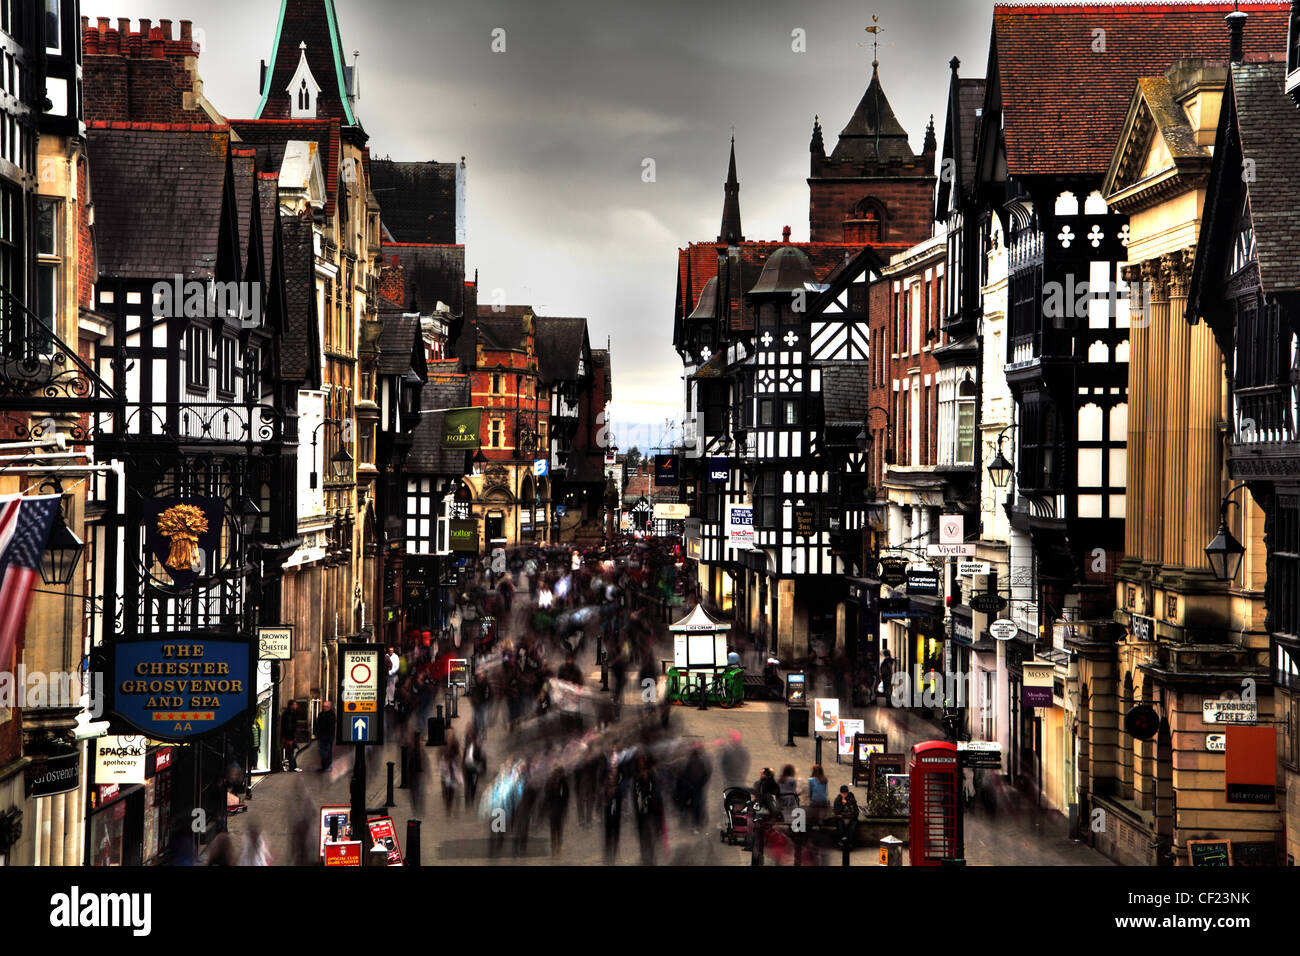 Chester,city,shoppers,rushing,around,and,going,about,their,business,in,Northgate,Street,where,it,meets,Frodsham,St.,Cheshire.,Historic,walled,wall,city,English,england,tourist,shop,shops,shopping,gotonysmith,Timber,rows,building,Grosvenor,hotel,mall,malls,pedestrianized,lane,ole,olde,Eastgate,buildings,pedestrianised,river,Dee,Eastgate,East,gate,walls,walled,tour,tourest,authority,tourist,image,best,greatest,interesting,different,slow,motion,shutter,long,exposure,gotonysmith,City Centre,City,Centre,@hotpixUK,Buy Pictures of,Buy Images Of